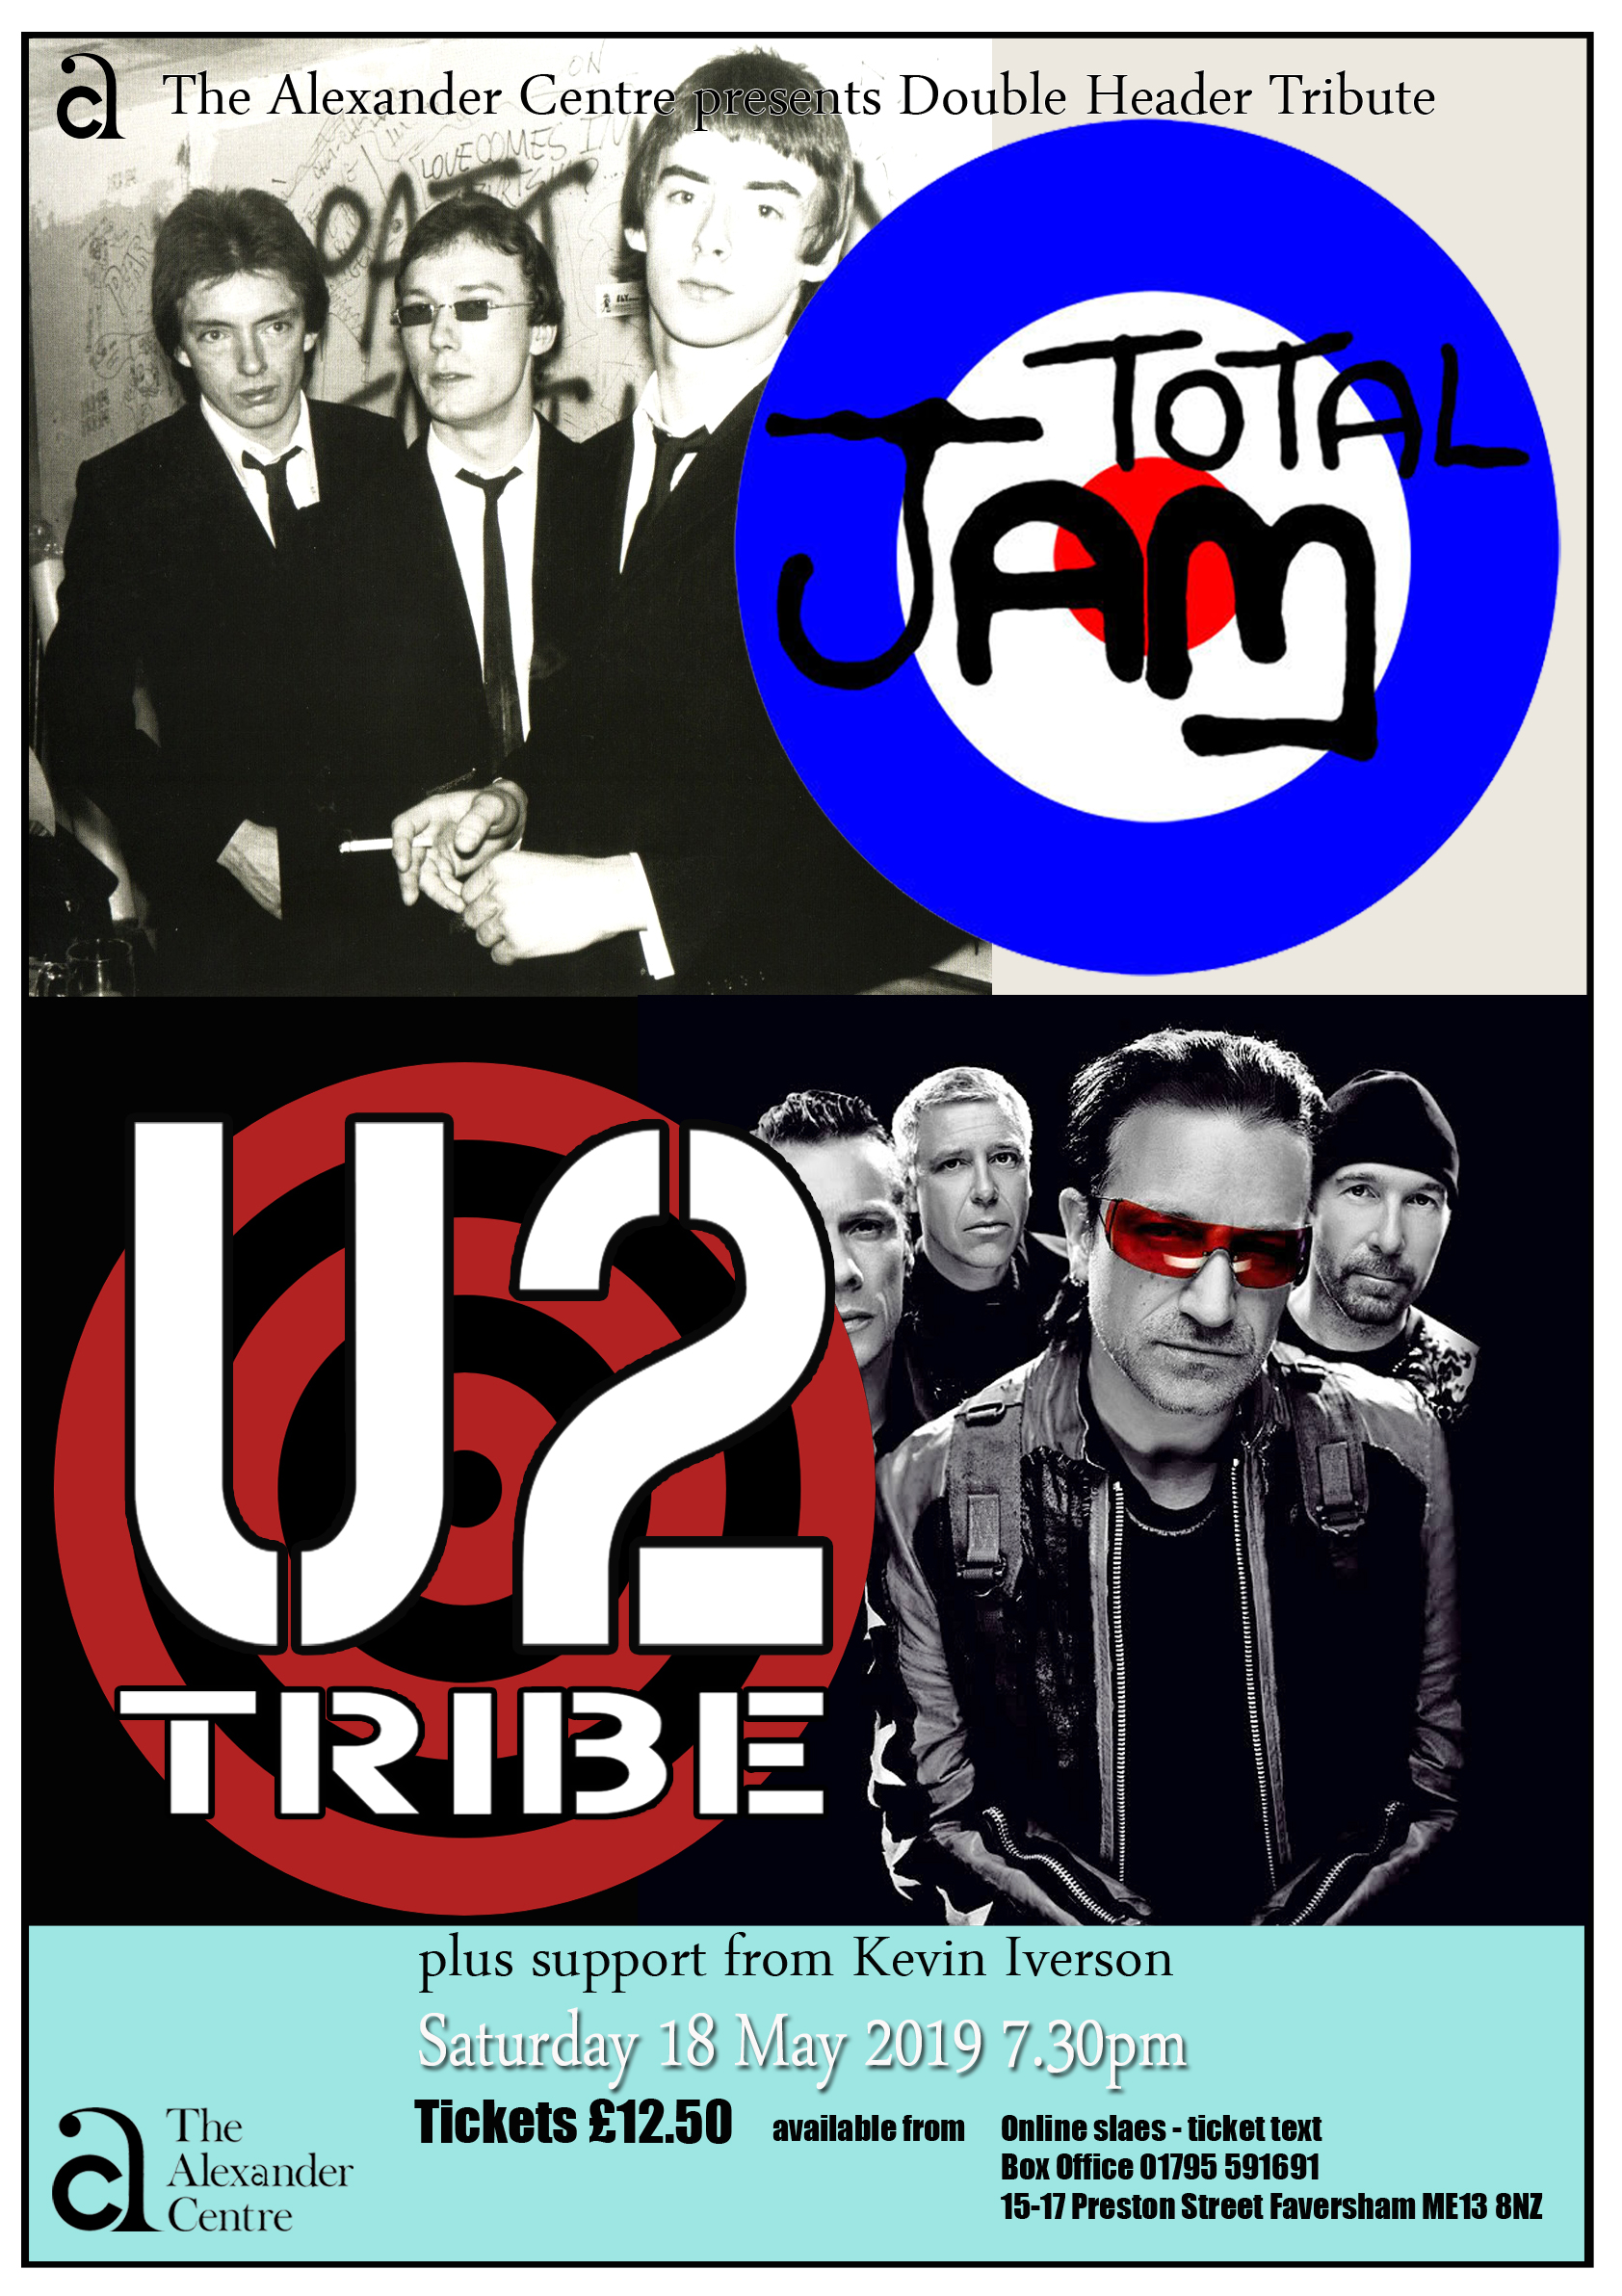 TOTAL JAM + U2 TRIBE Double Header Tribute